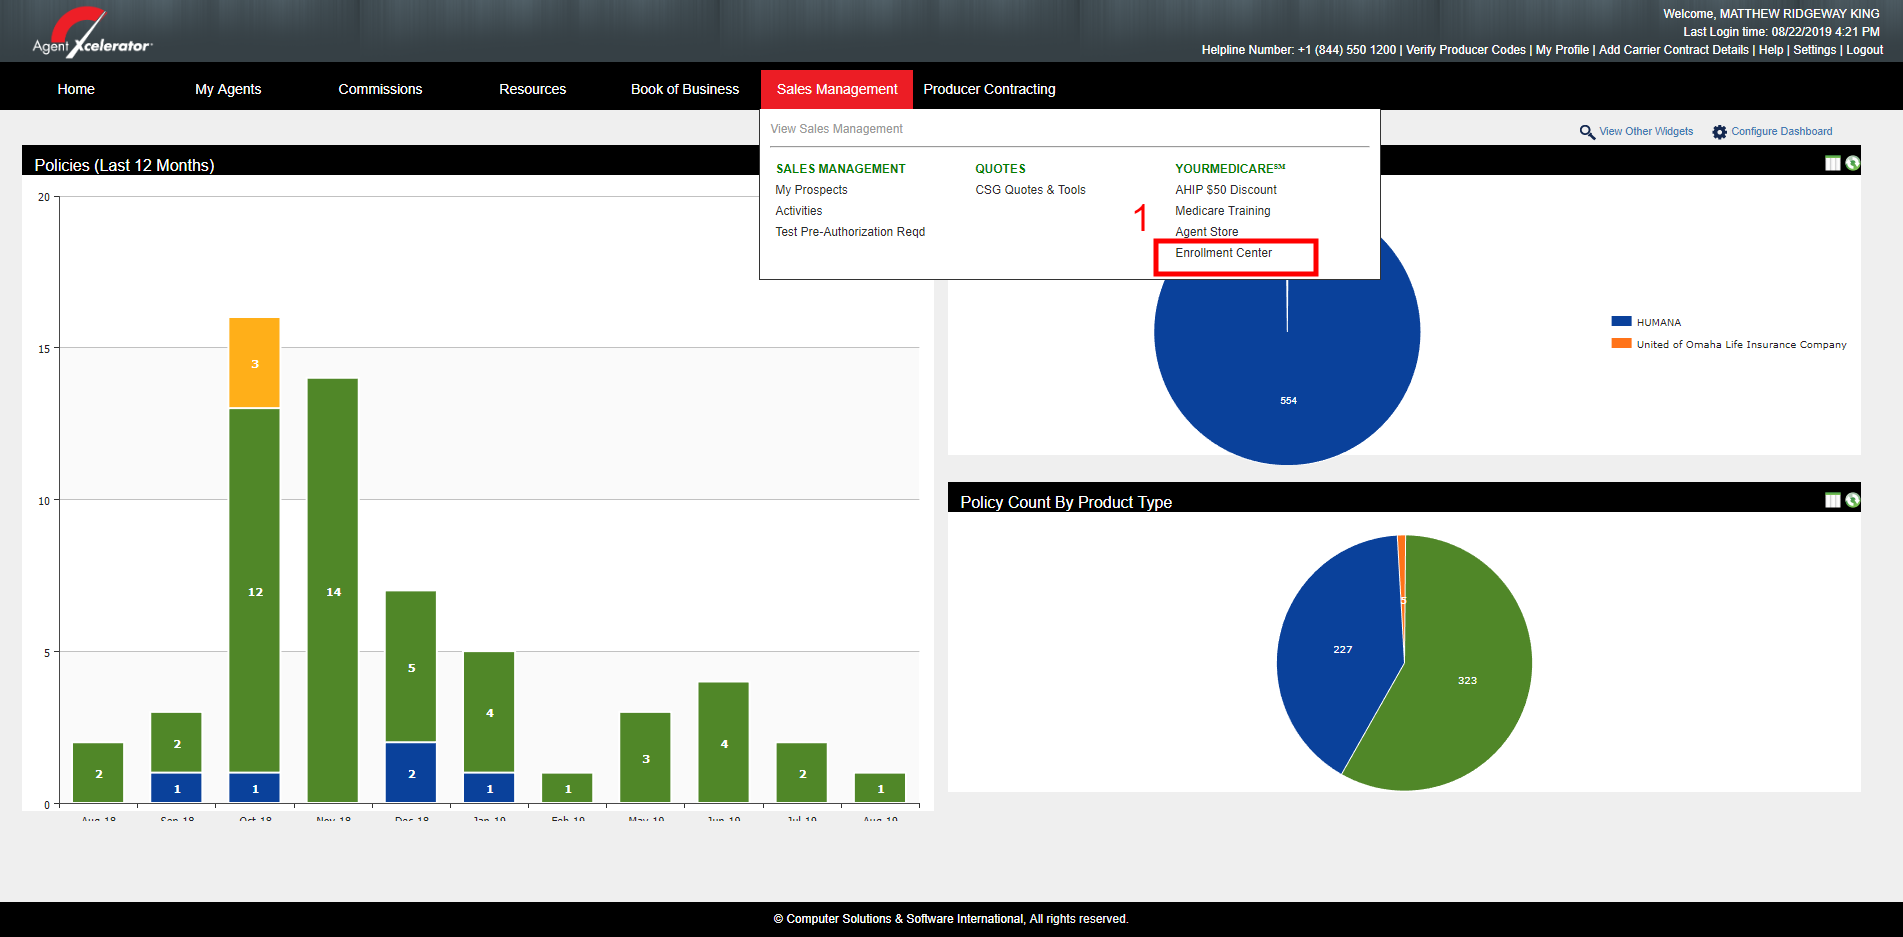 MAPD Enrollment Tool in Agent Xcelerator